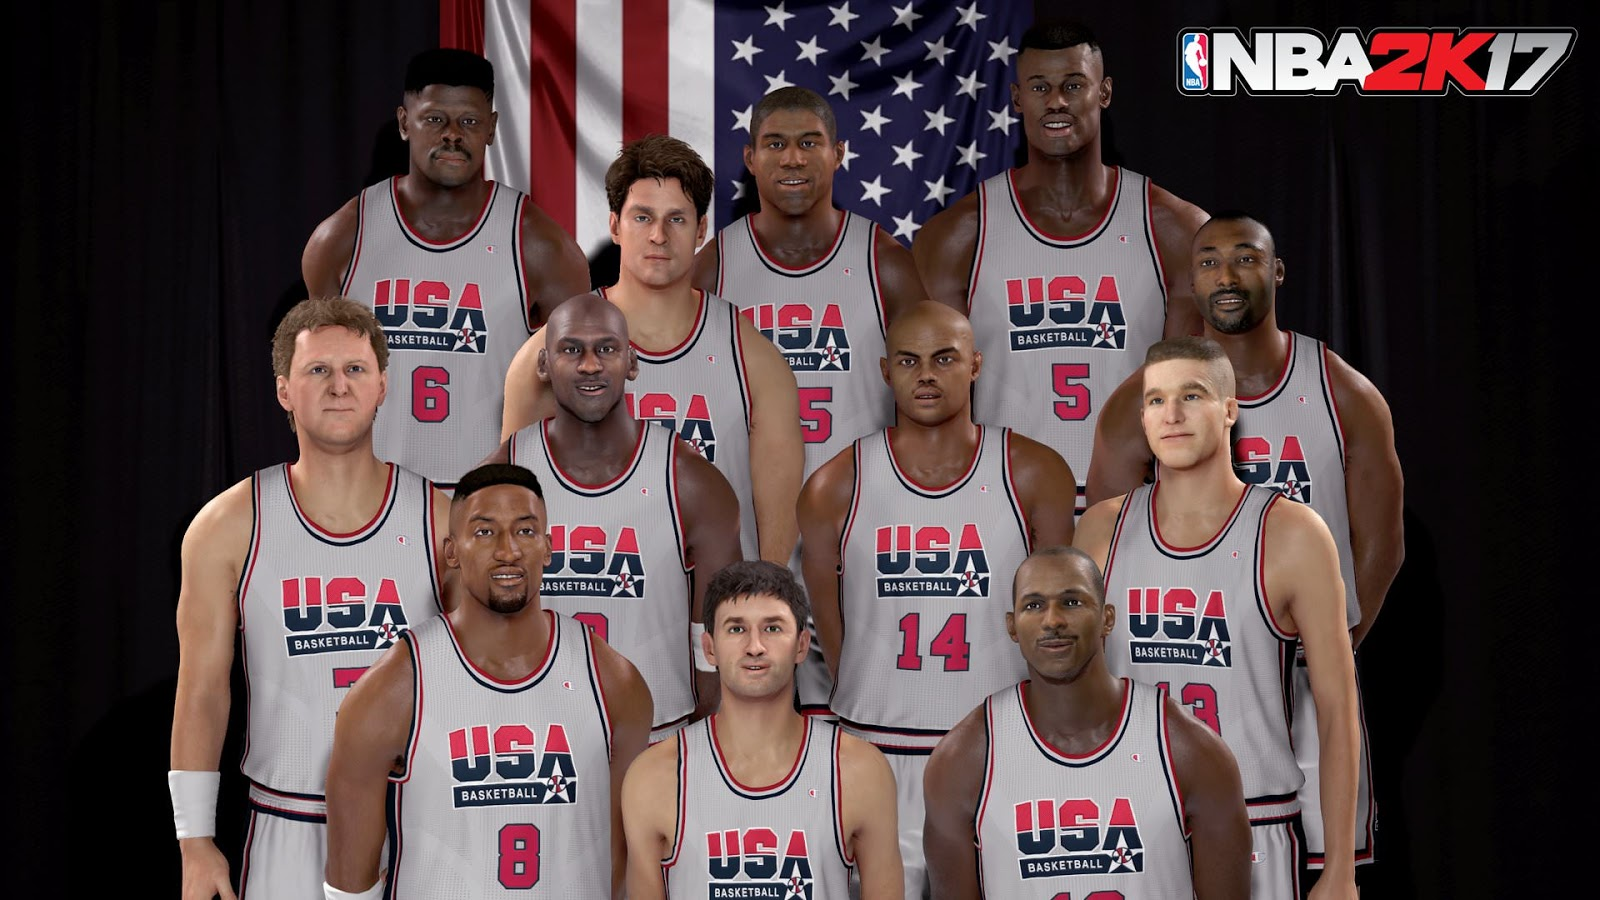 NBA 2k17 Screenshot - 1992 Dream Team